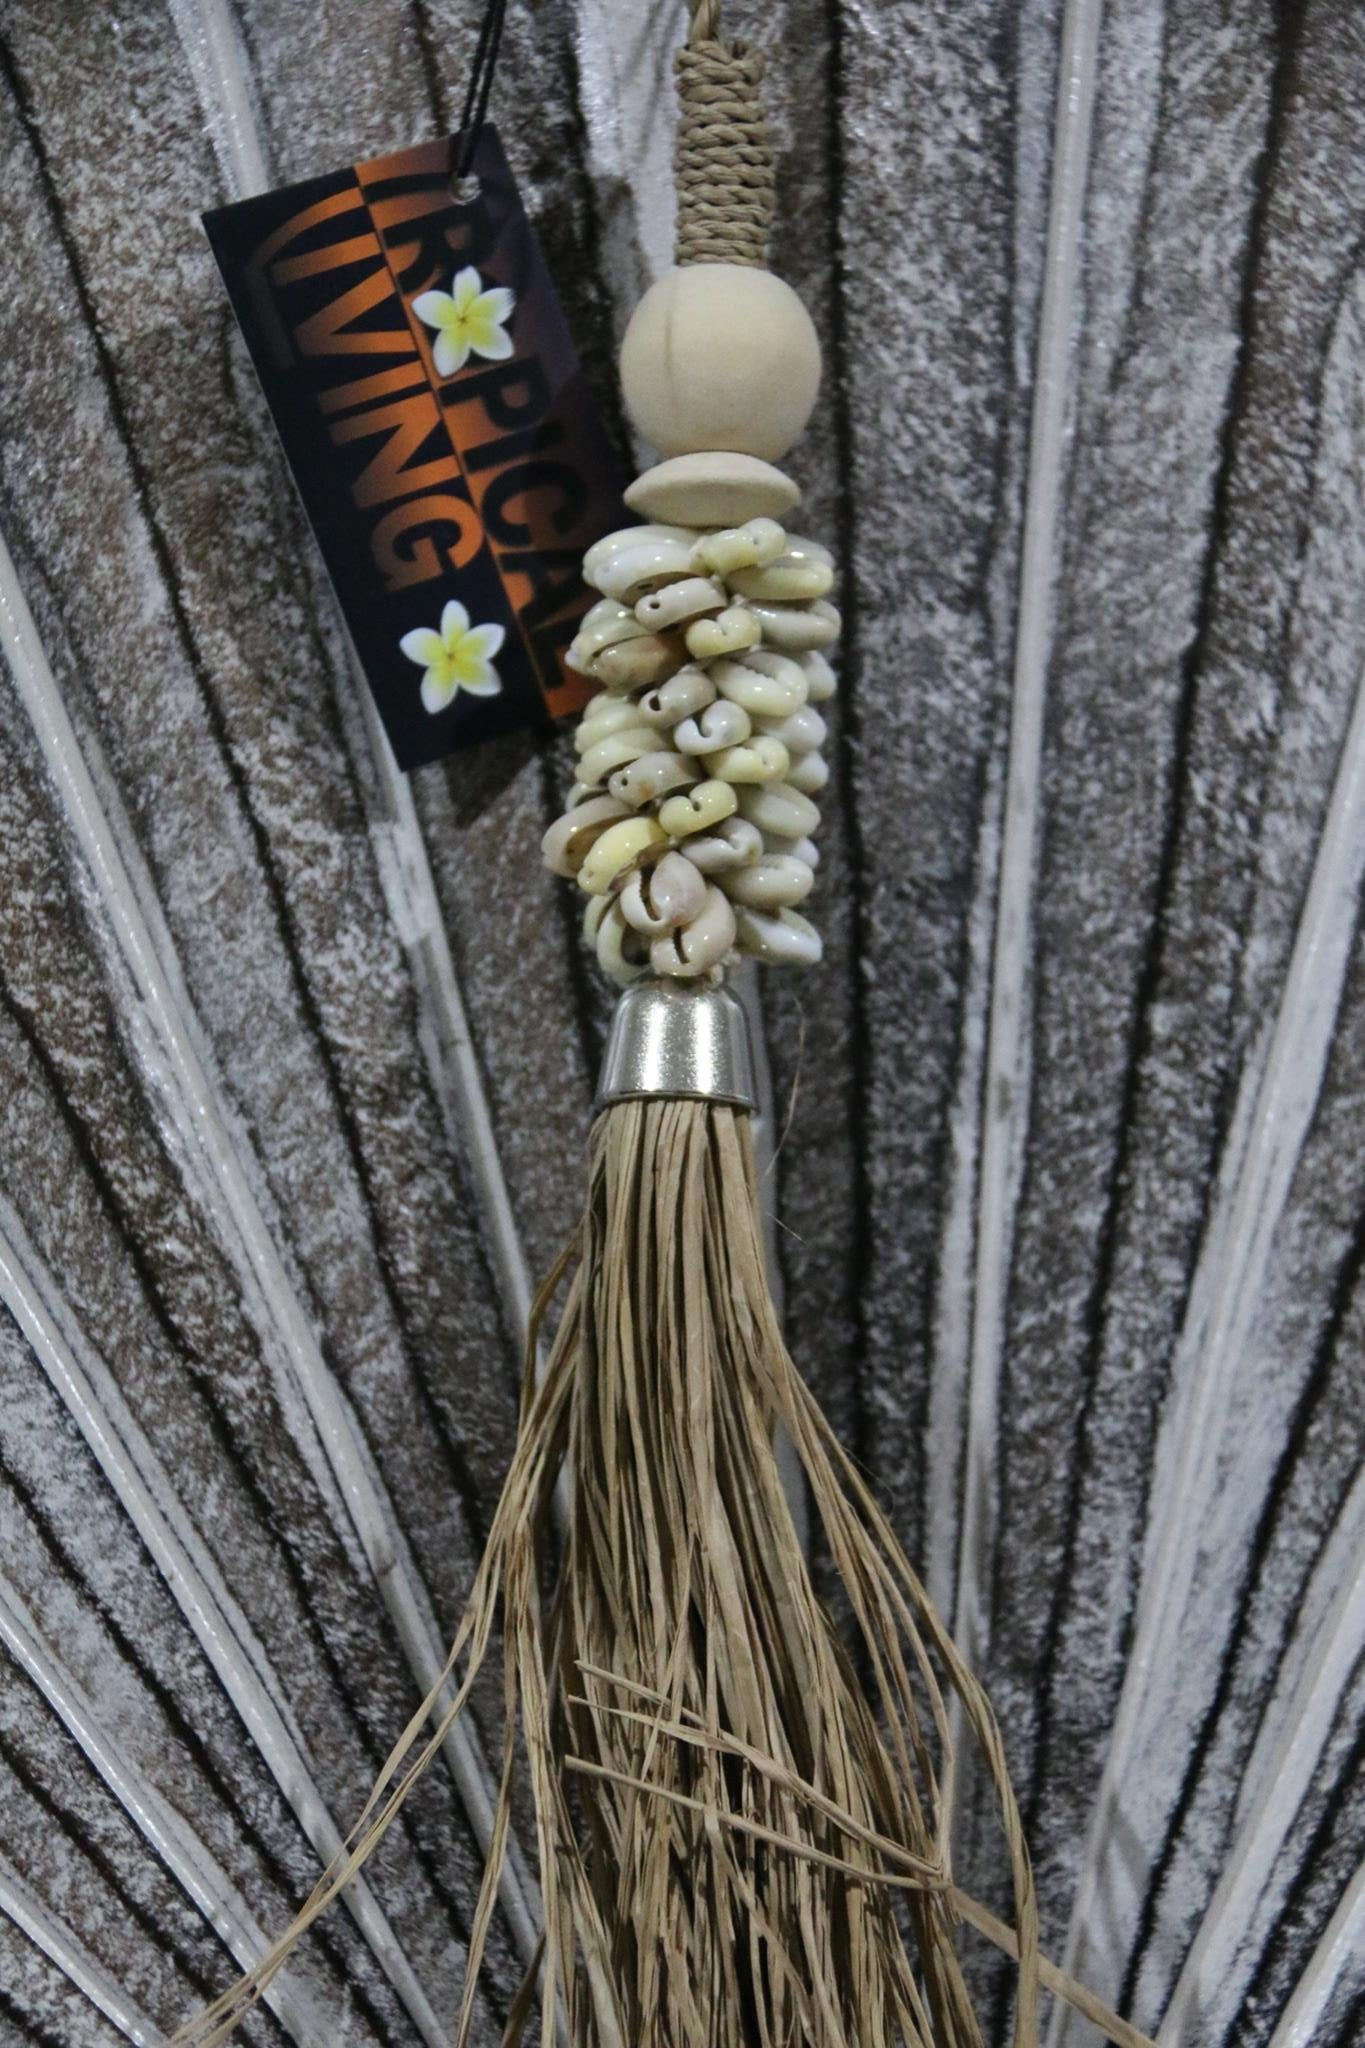 NEW BALINESE SHELL TASSEL - BALI SHELL HANGING DECOR - BOHO STYLE HOMEWARES